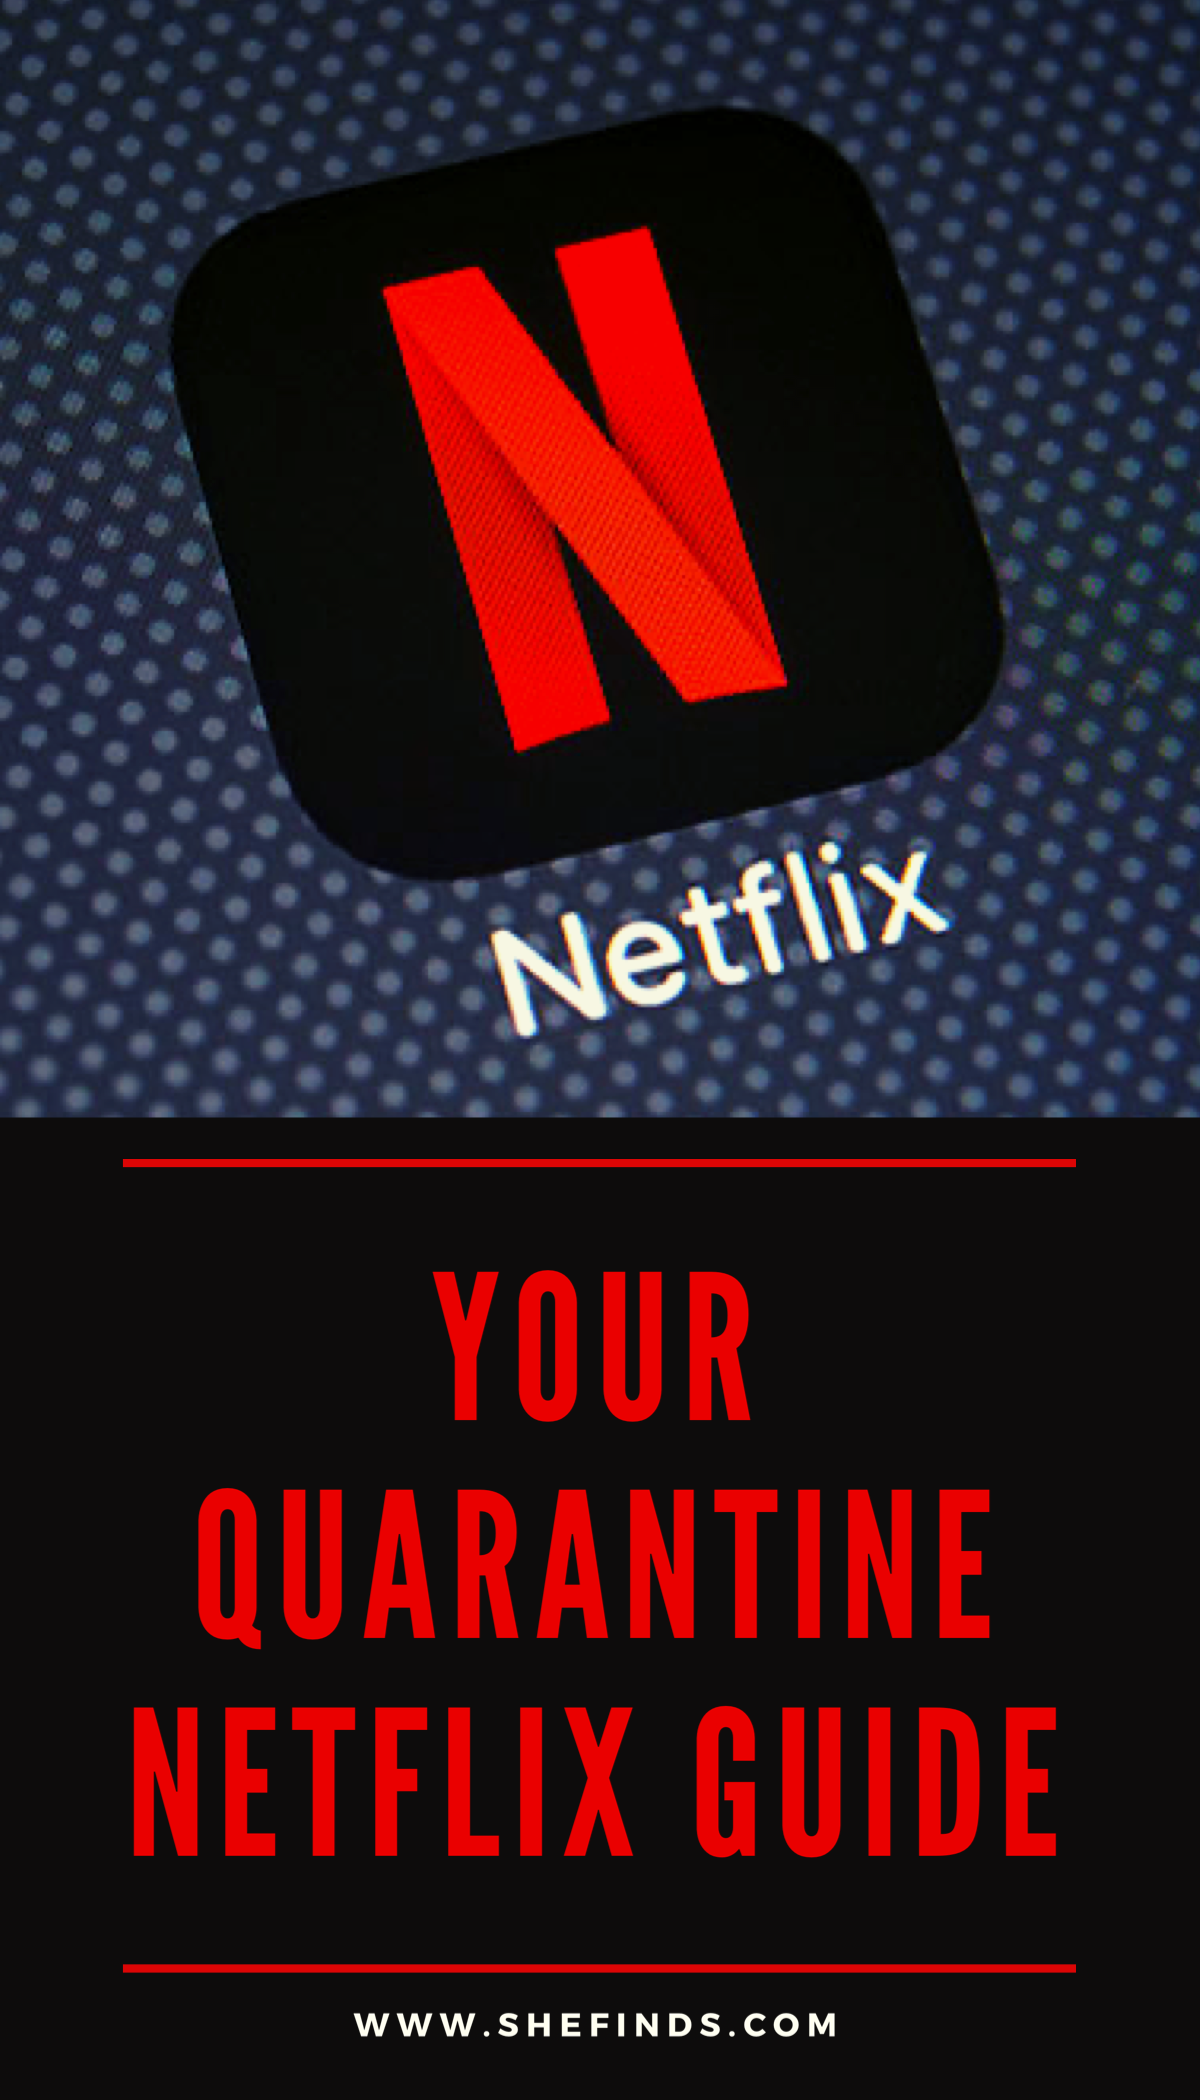 Netflix Just Made A Huge Announcement & People Are